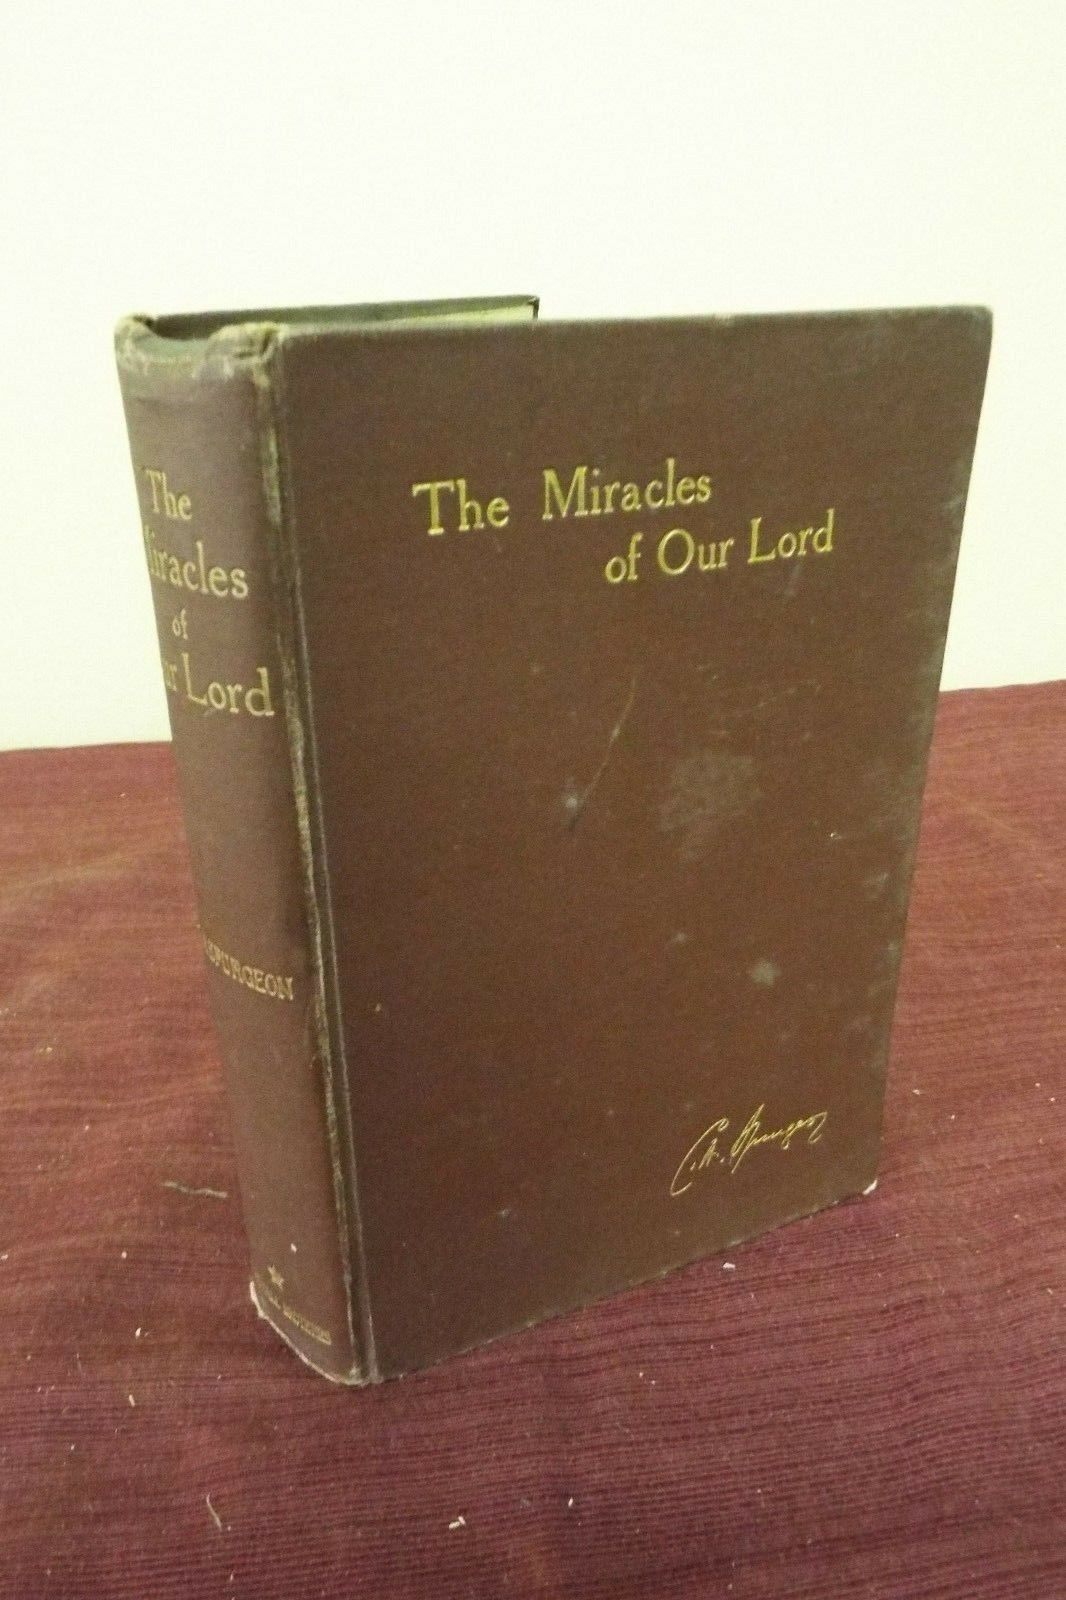 The Miracles of Our Lord - Spurgeon - 1909 Metropolitan Tabernacle Series